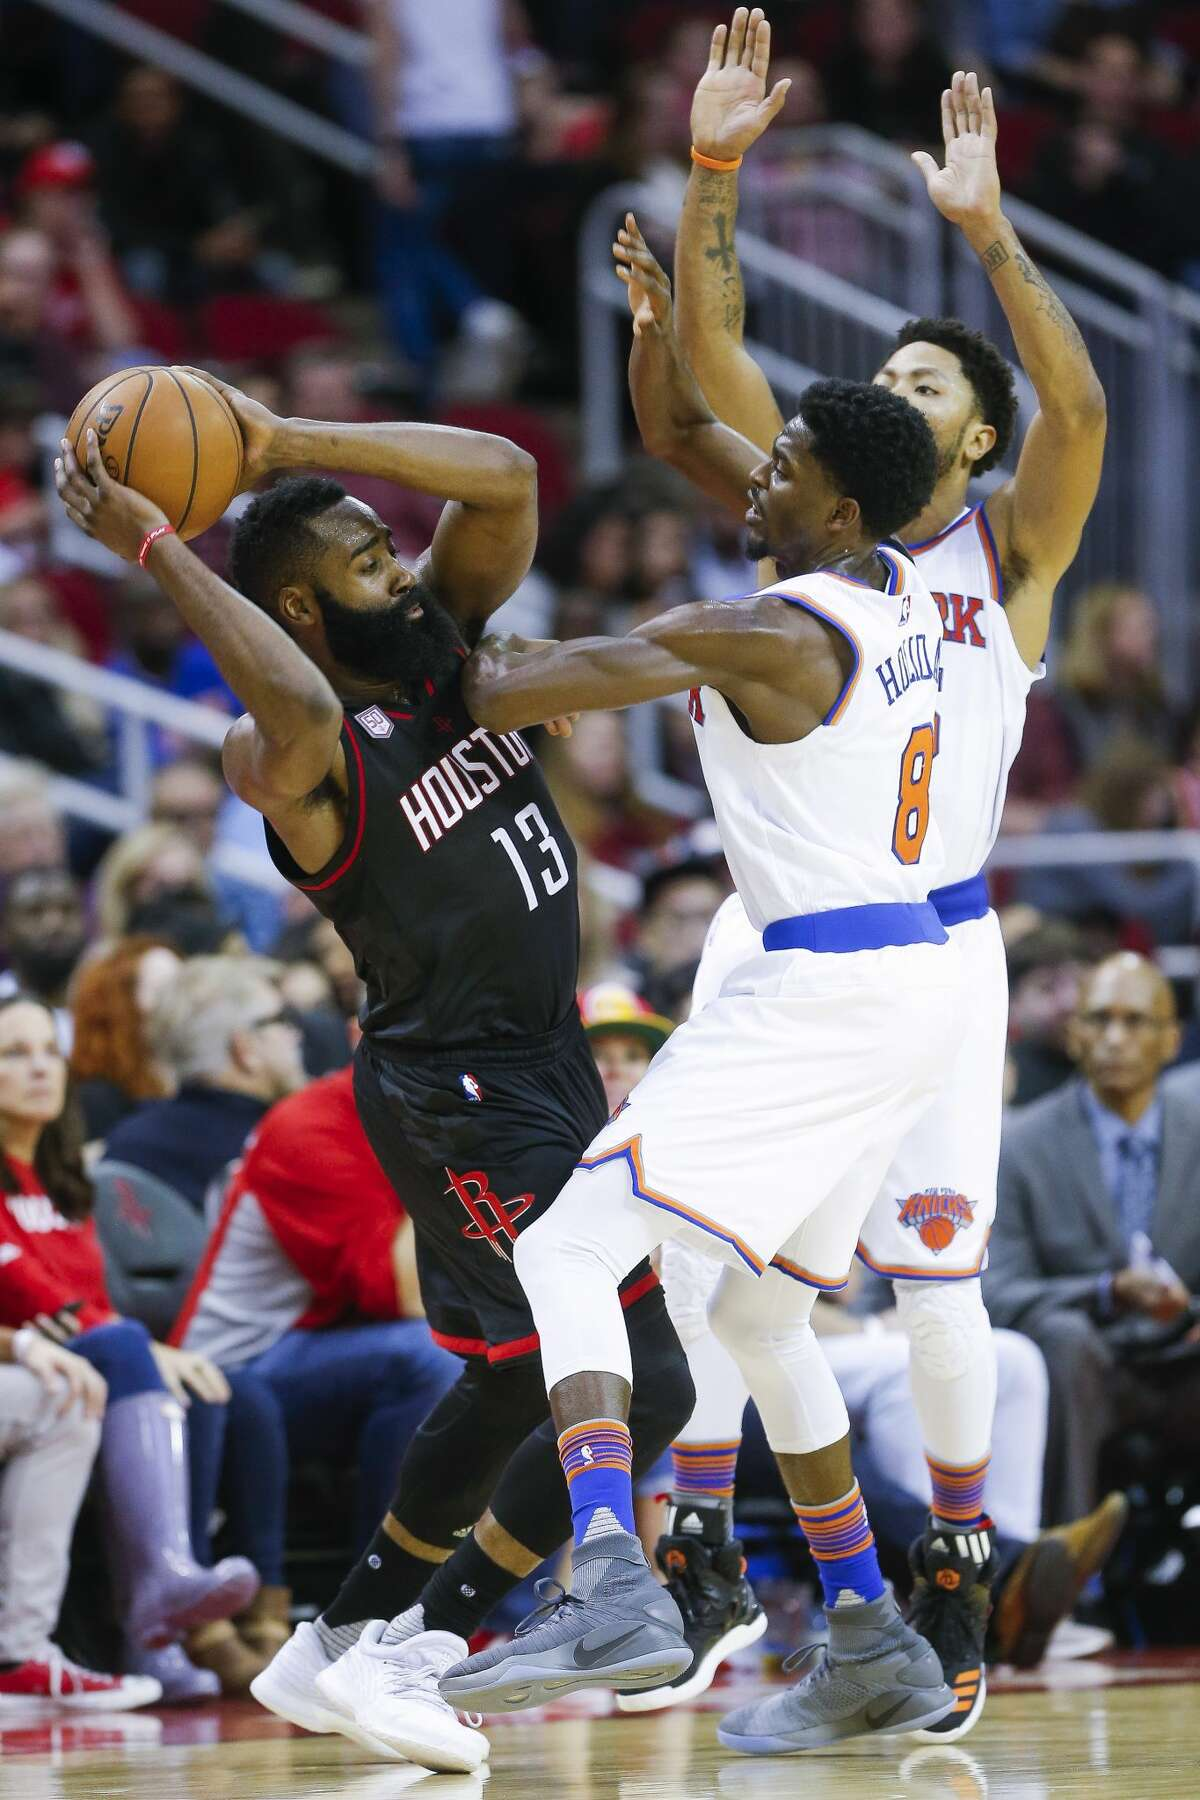 Houston Rockets guard James Harden (13) looks to make a pass around New York Knicks guard Justin Holiday (8) and guard Derrick Rose (25) as the Houston Rockets take on the New York Knicks at the Toyota Center Saturday, Dec. 31, 2016 in Houston. ( Michael Ciaglo / Houston Chronicle )